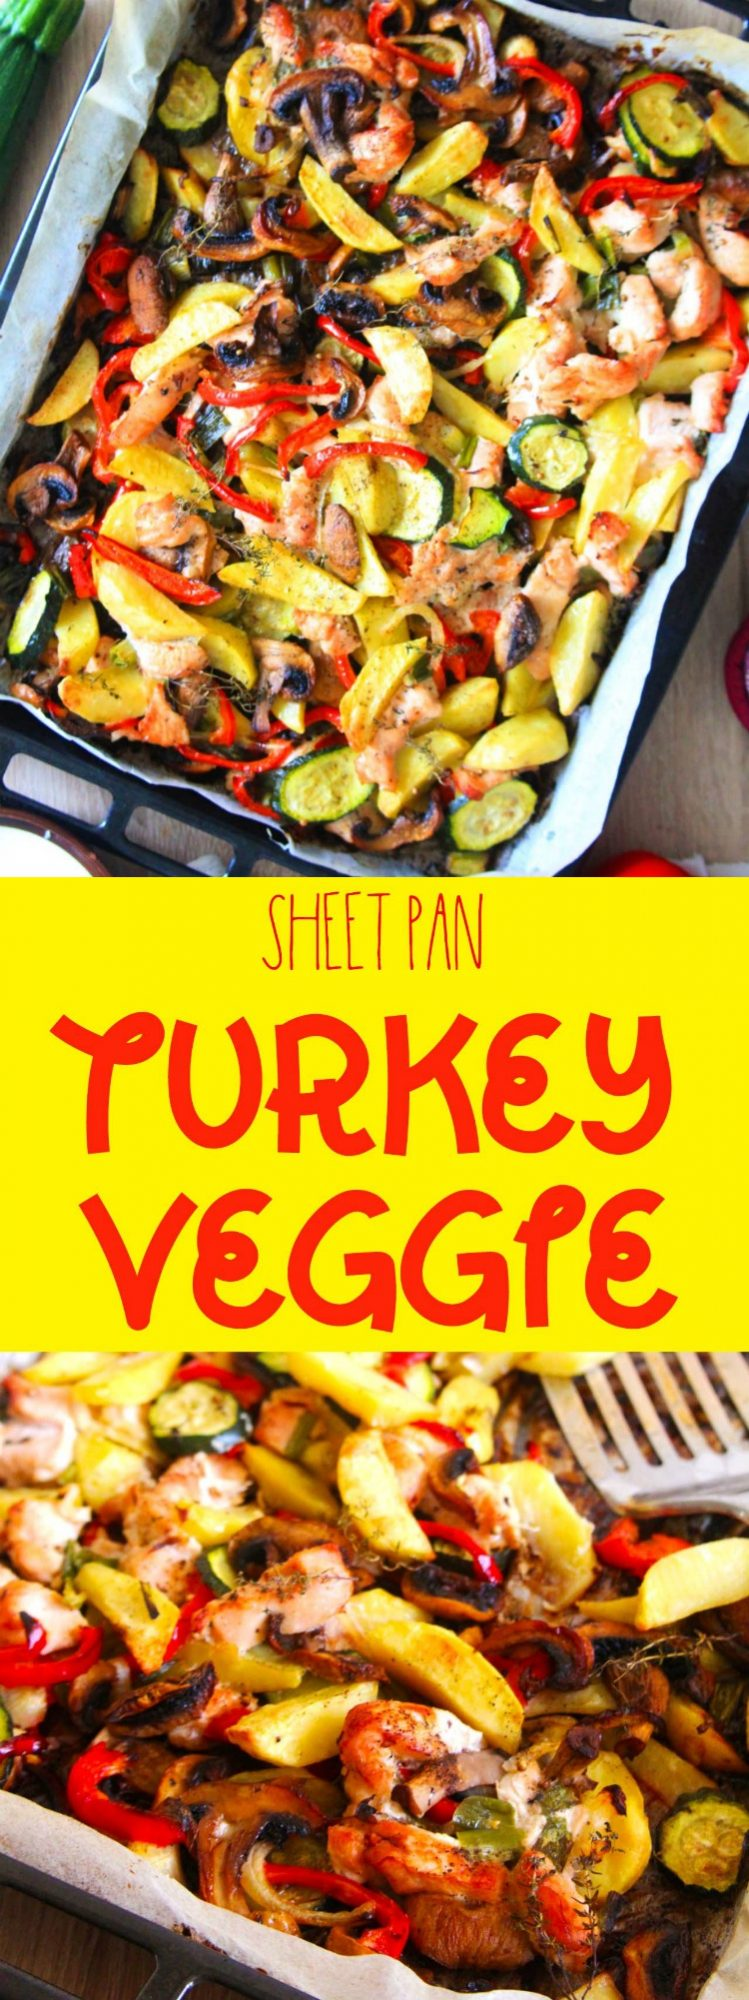 One pan turkey veggie bake